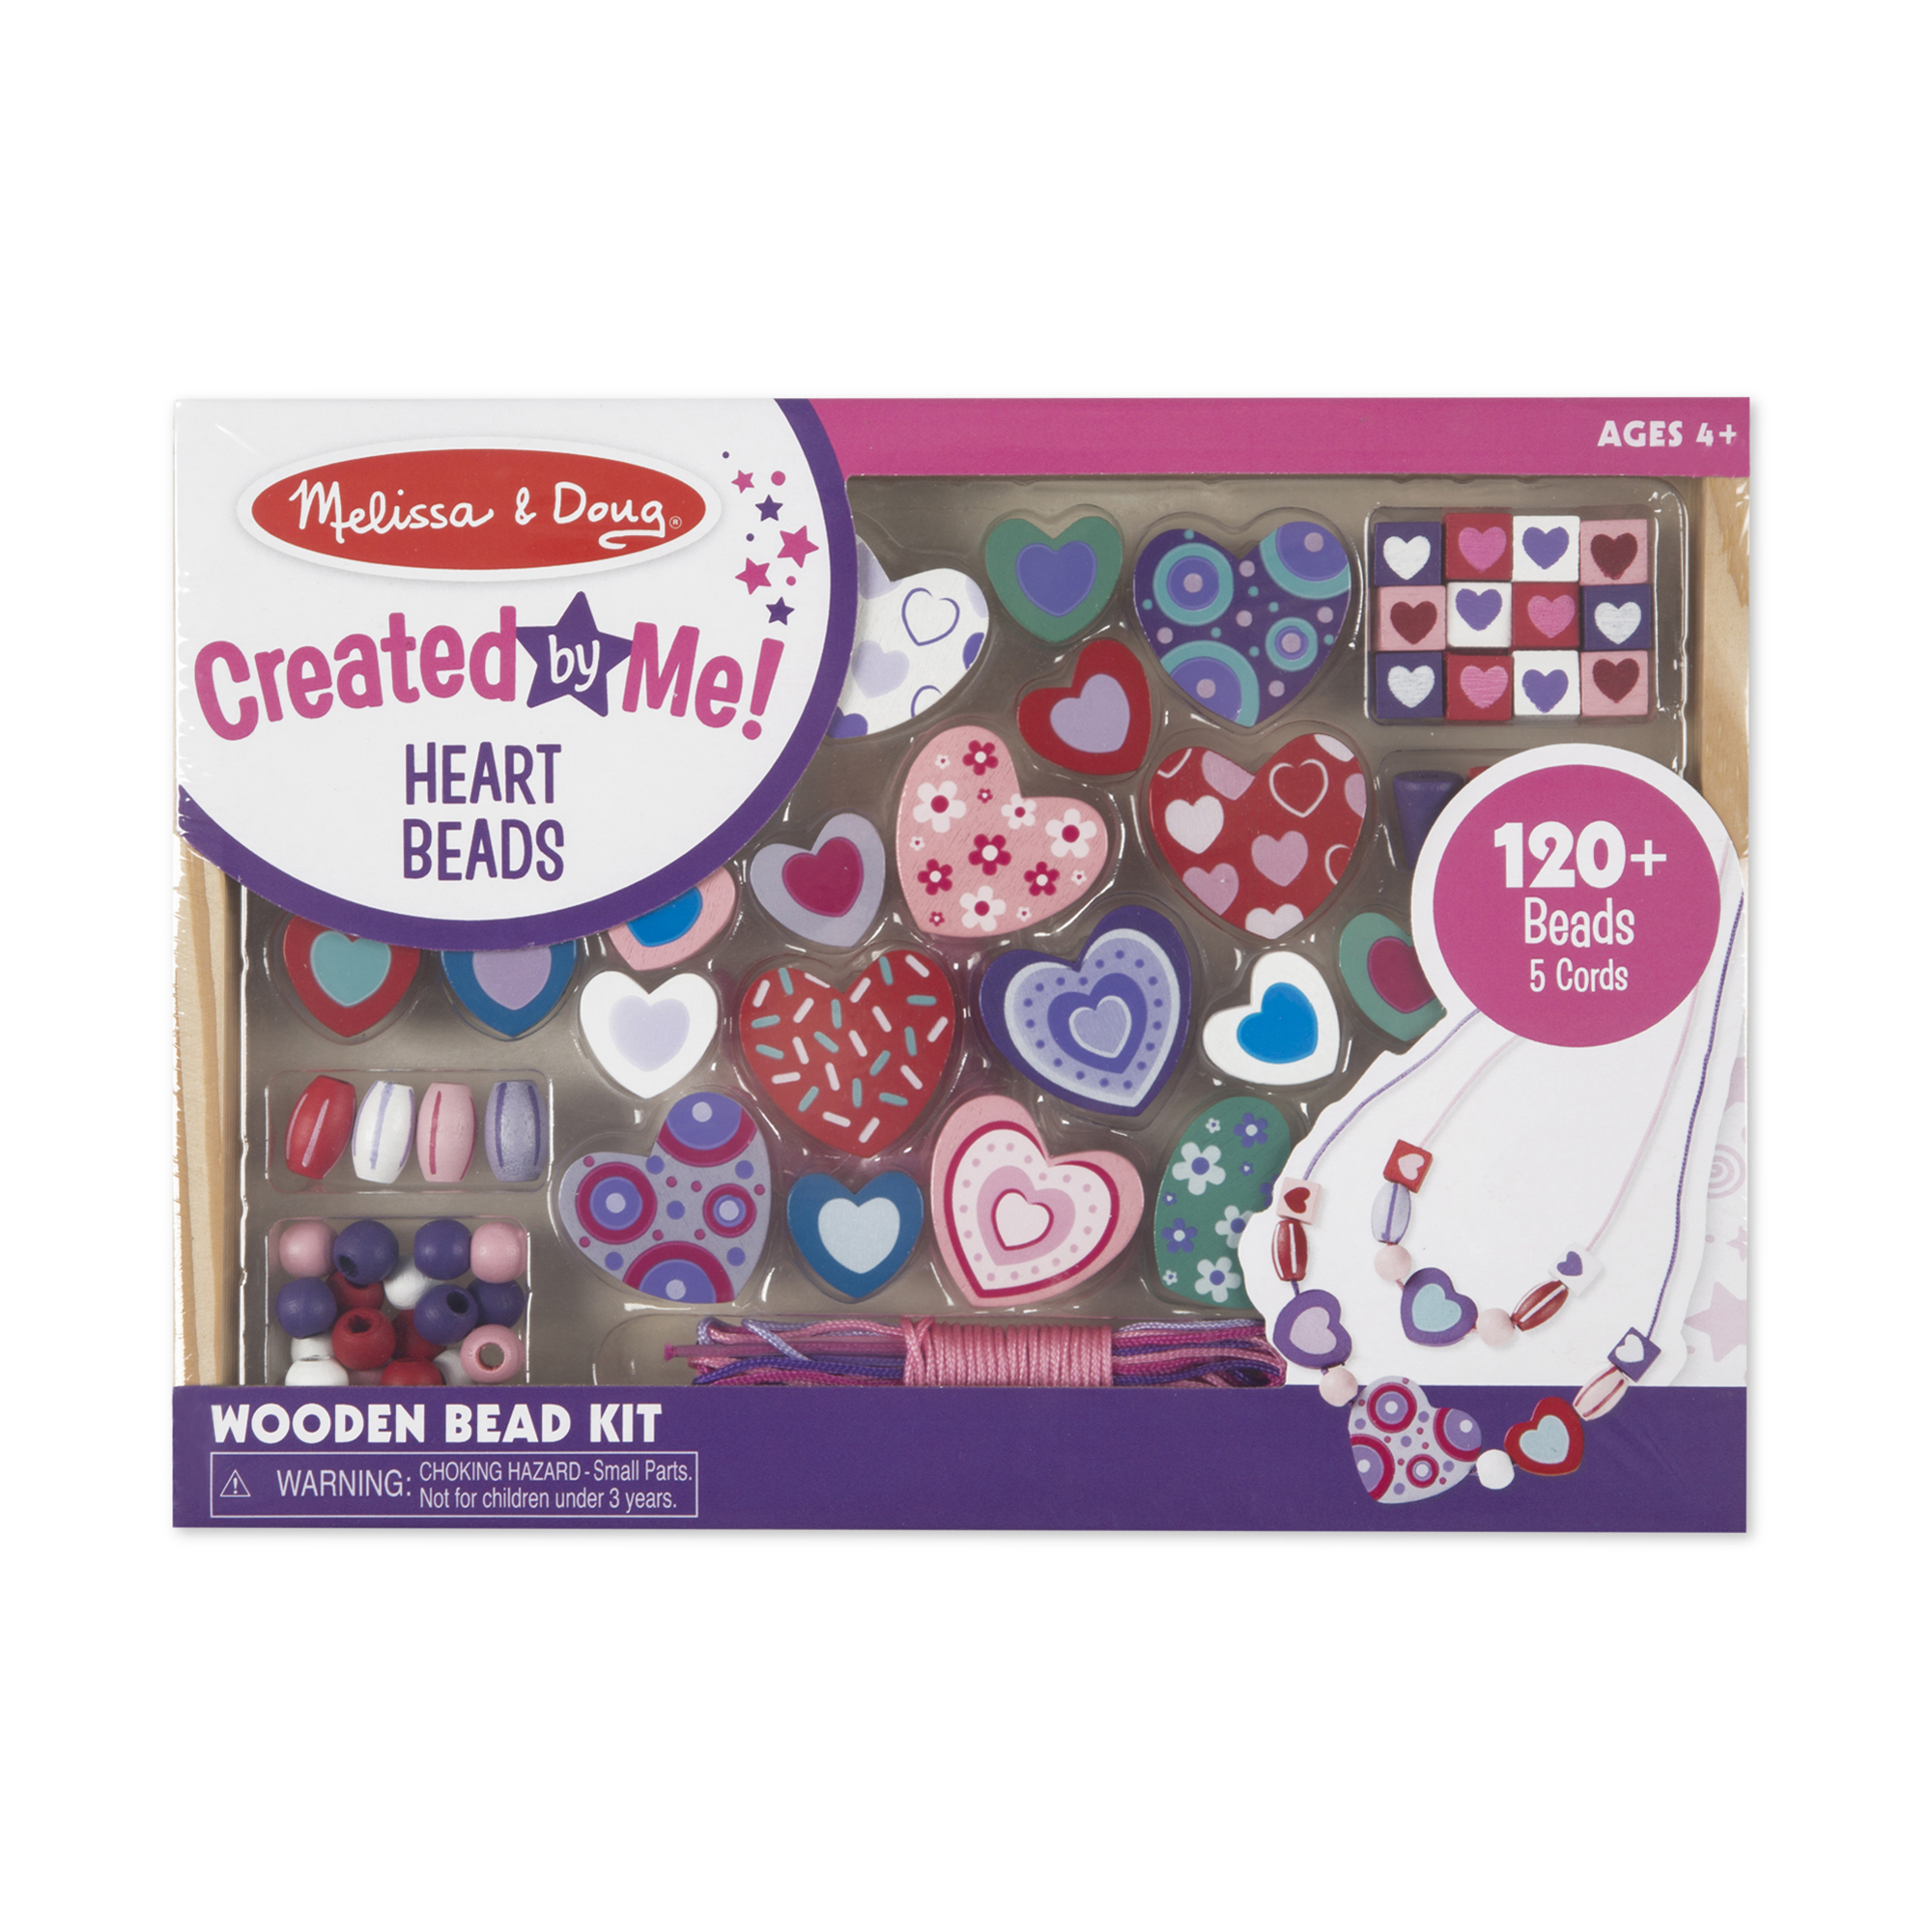 Melissa & Doug  ~ Created by Me! Heart Beads Wooden Bead Kit ~ 4+